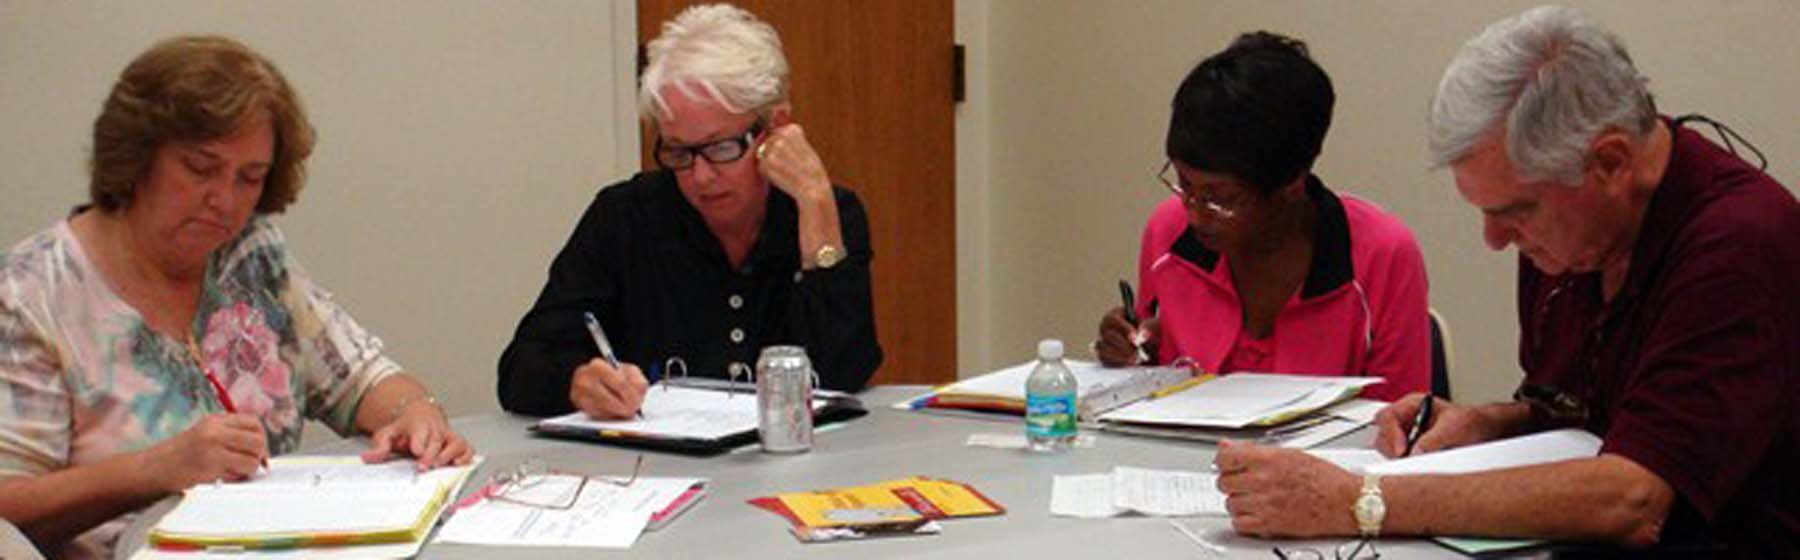 Write Your Life: Get Started class at The Villages Enrichment Academy